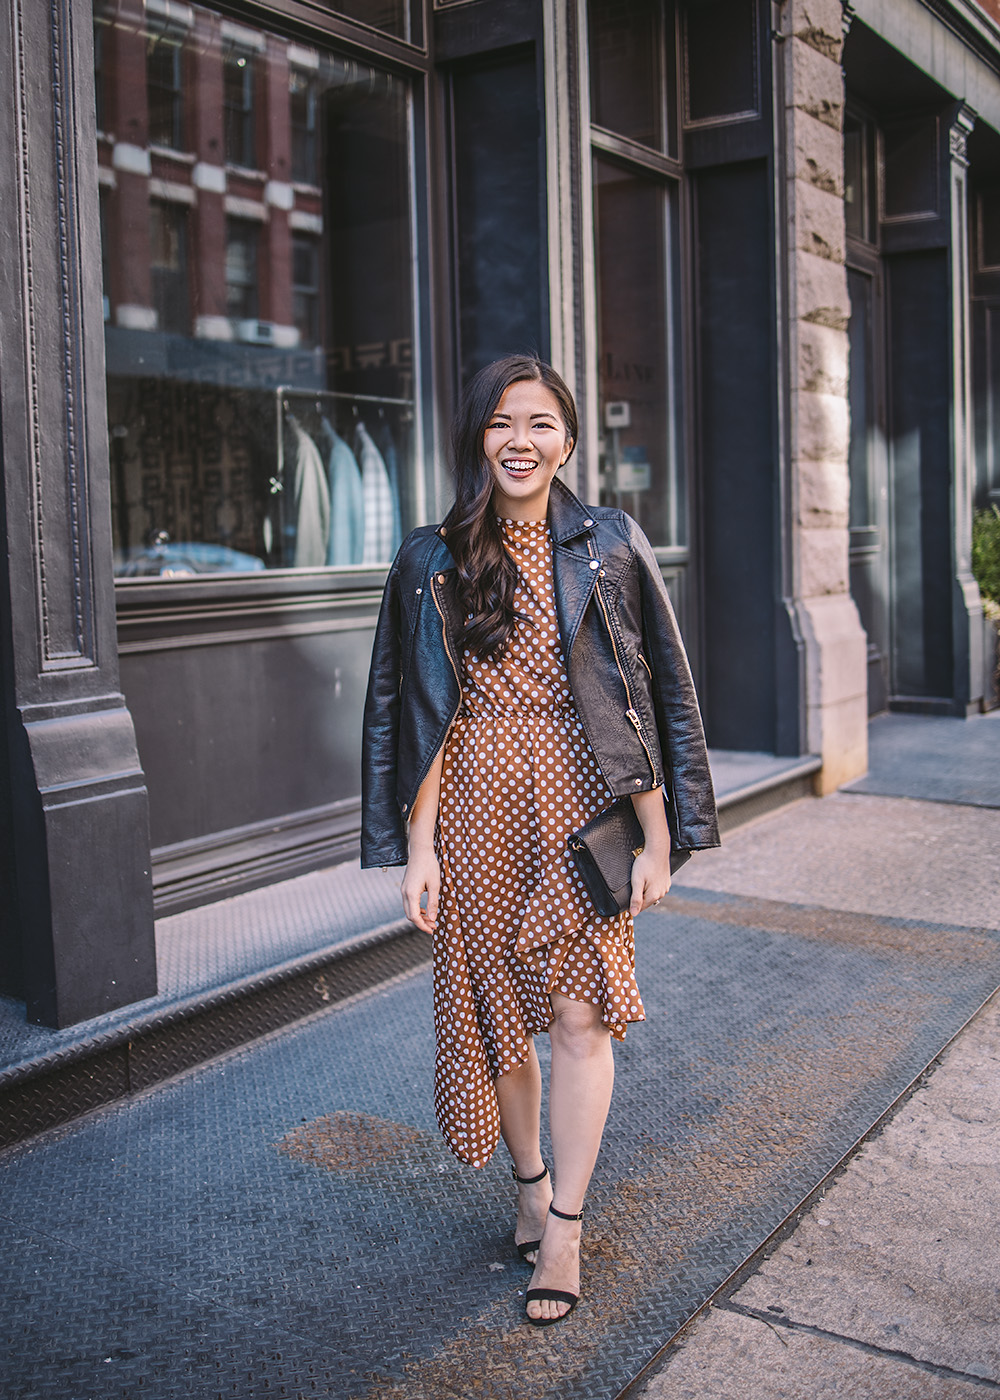 Date Night Outfit Ideas / Polka Dot Dress & Moto Jacket